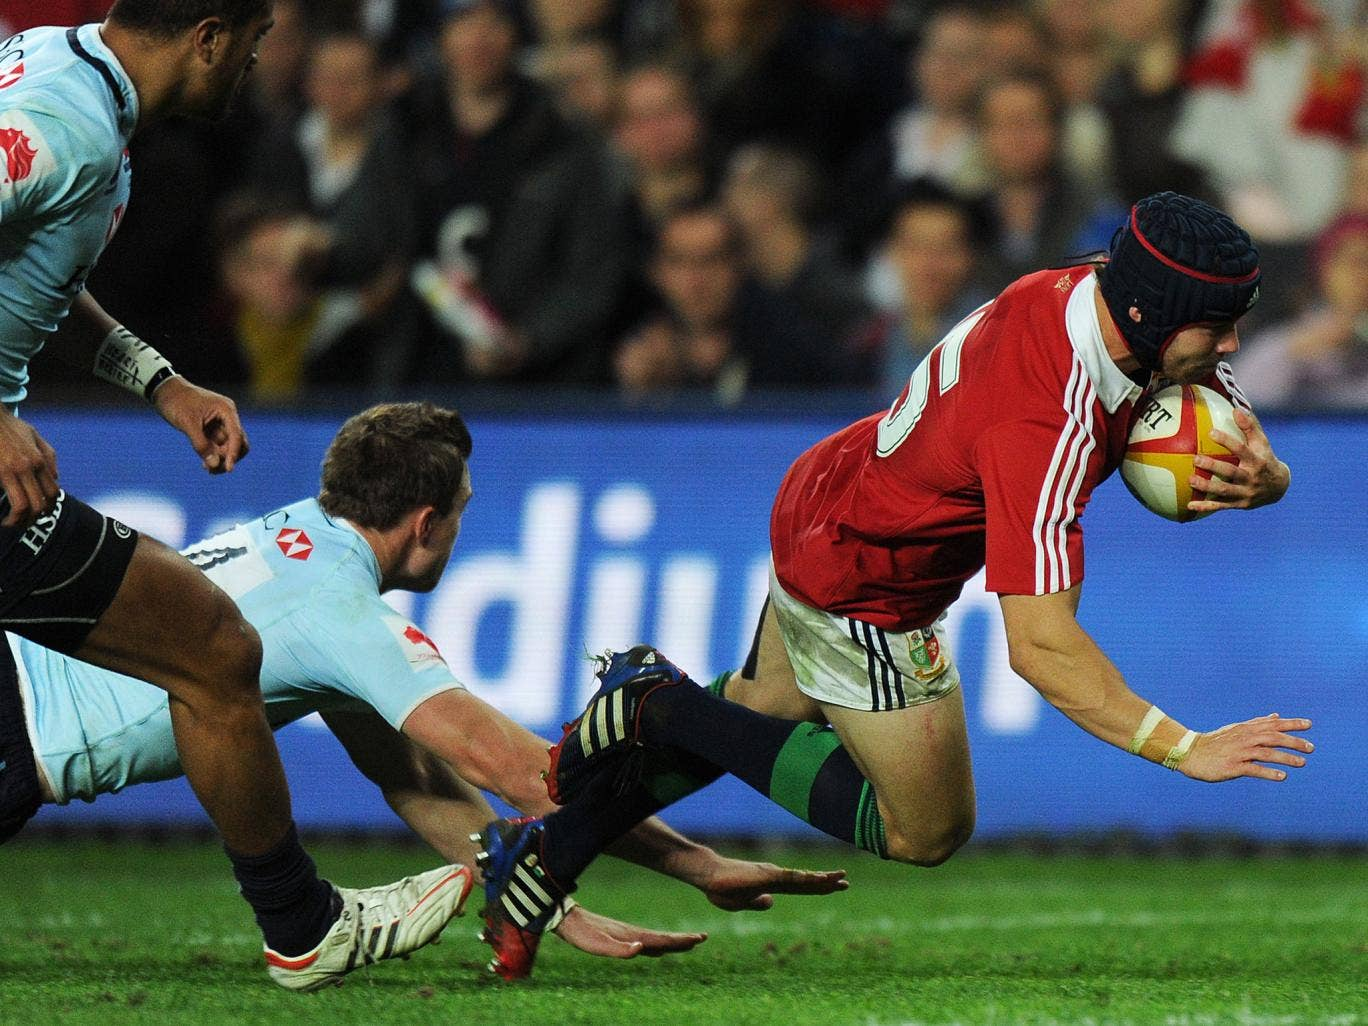 Leigh Halfpenny scores against the NSW Waratahs